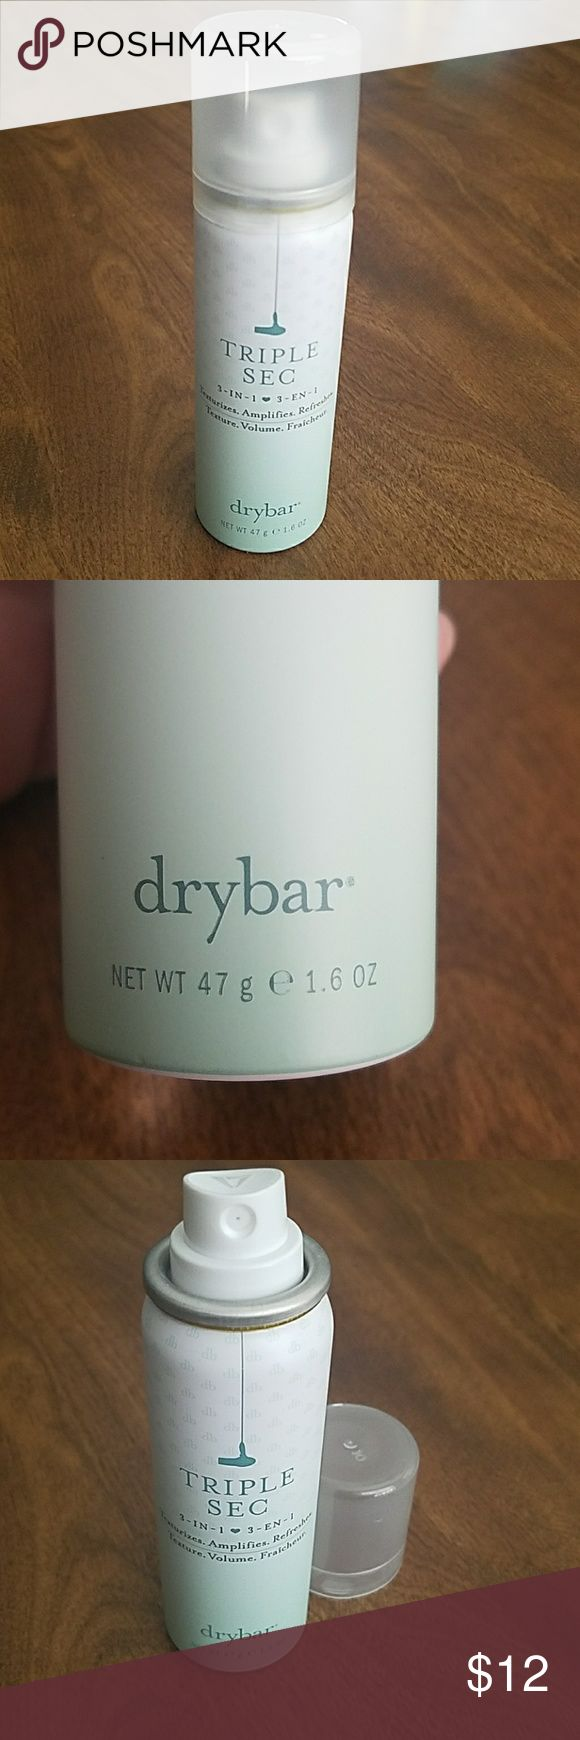 NEW drybar Triple Sec 3 in 1 dry shampoo 1.6oz This is 100% used! Drybar Triple Sec 3 in 1 dry shampoo. Texturizers, amplifies and refreshes. Smells great and gives awesome volume! This is my favorite dry shampoo ever! This was a gift but I cannot afford to keep it. This is the 1.6 oz can (travel size). The full size bottle contains twice as much at twice the price. drybar Other